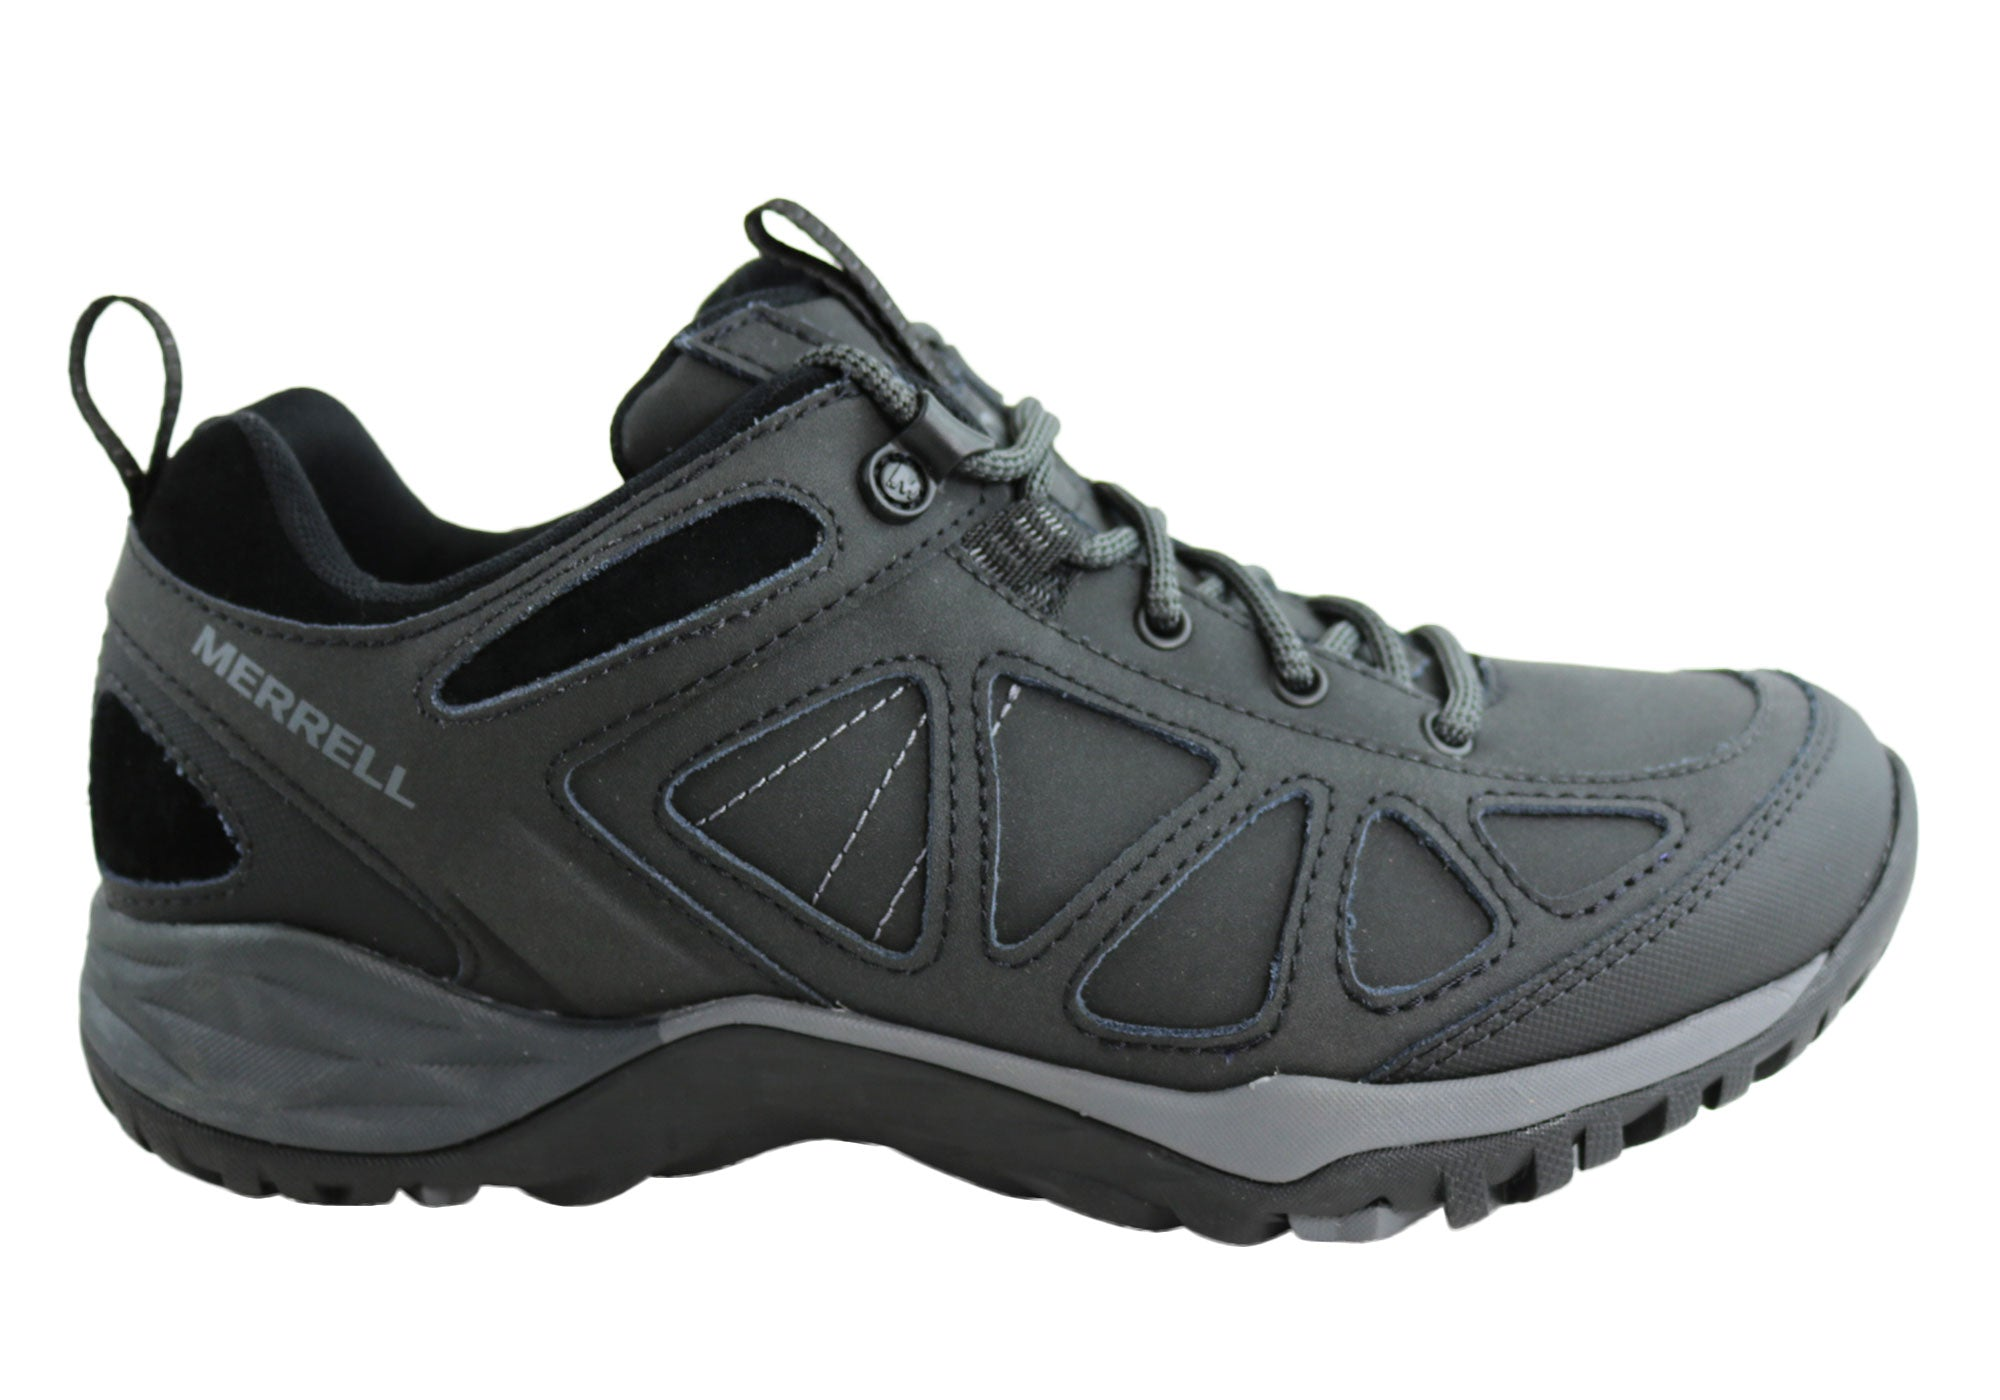 7b6332e02f5a Home Merrell Siren Q2 Leather Waterproof Comfort Womens Hiking Shoes. Black  ...